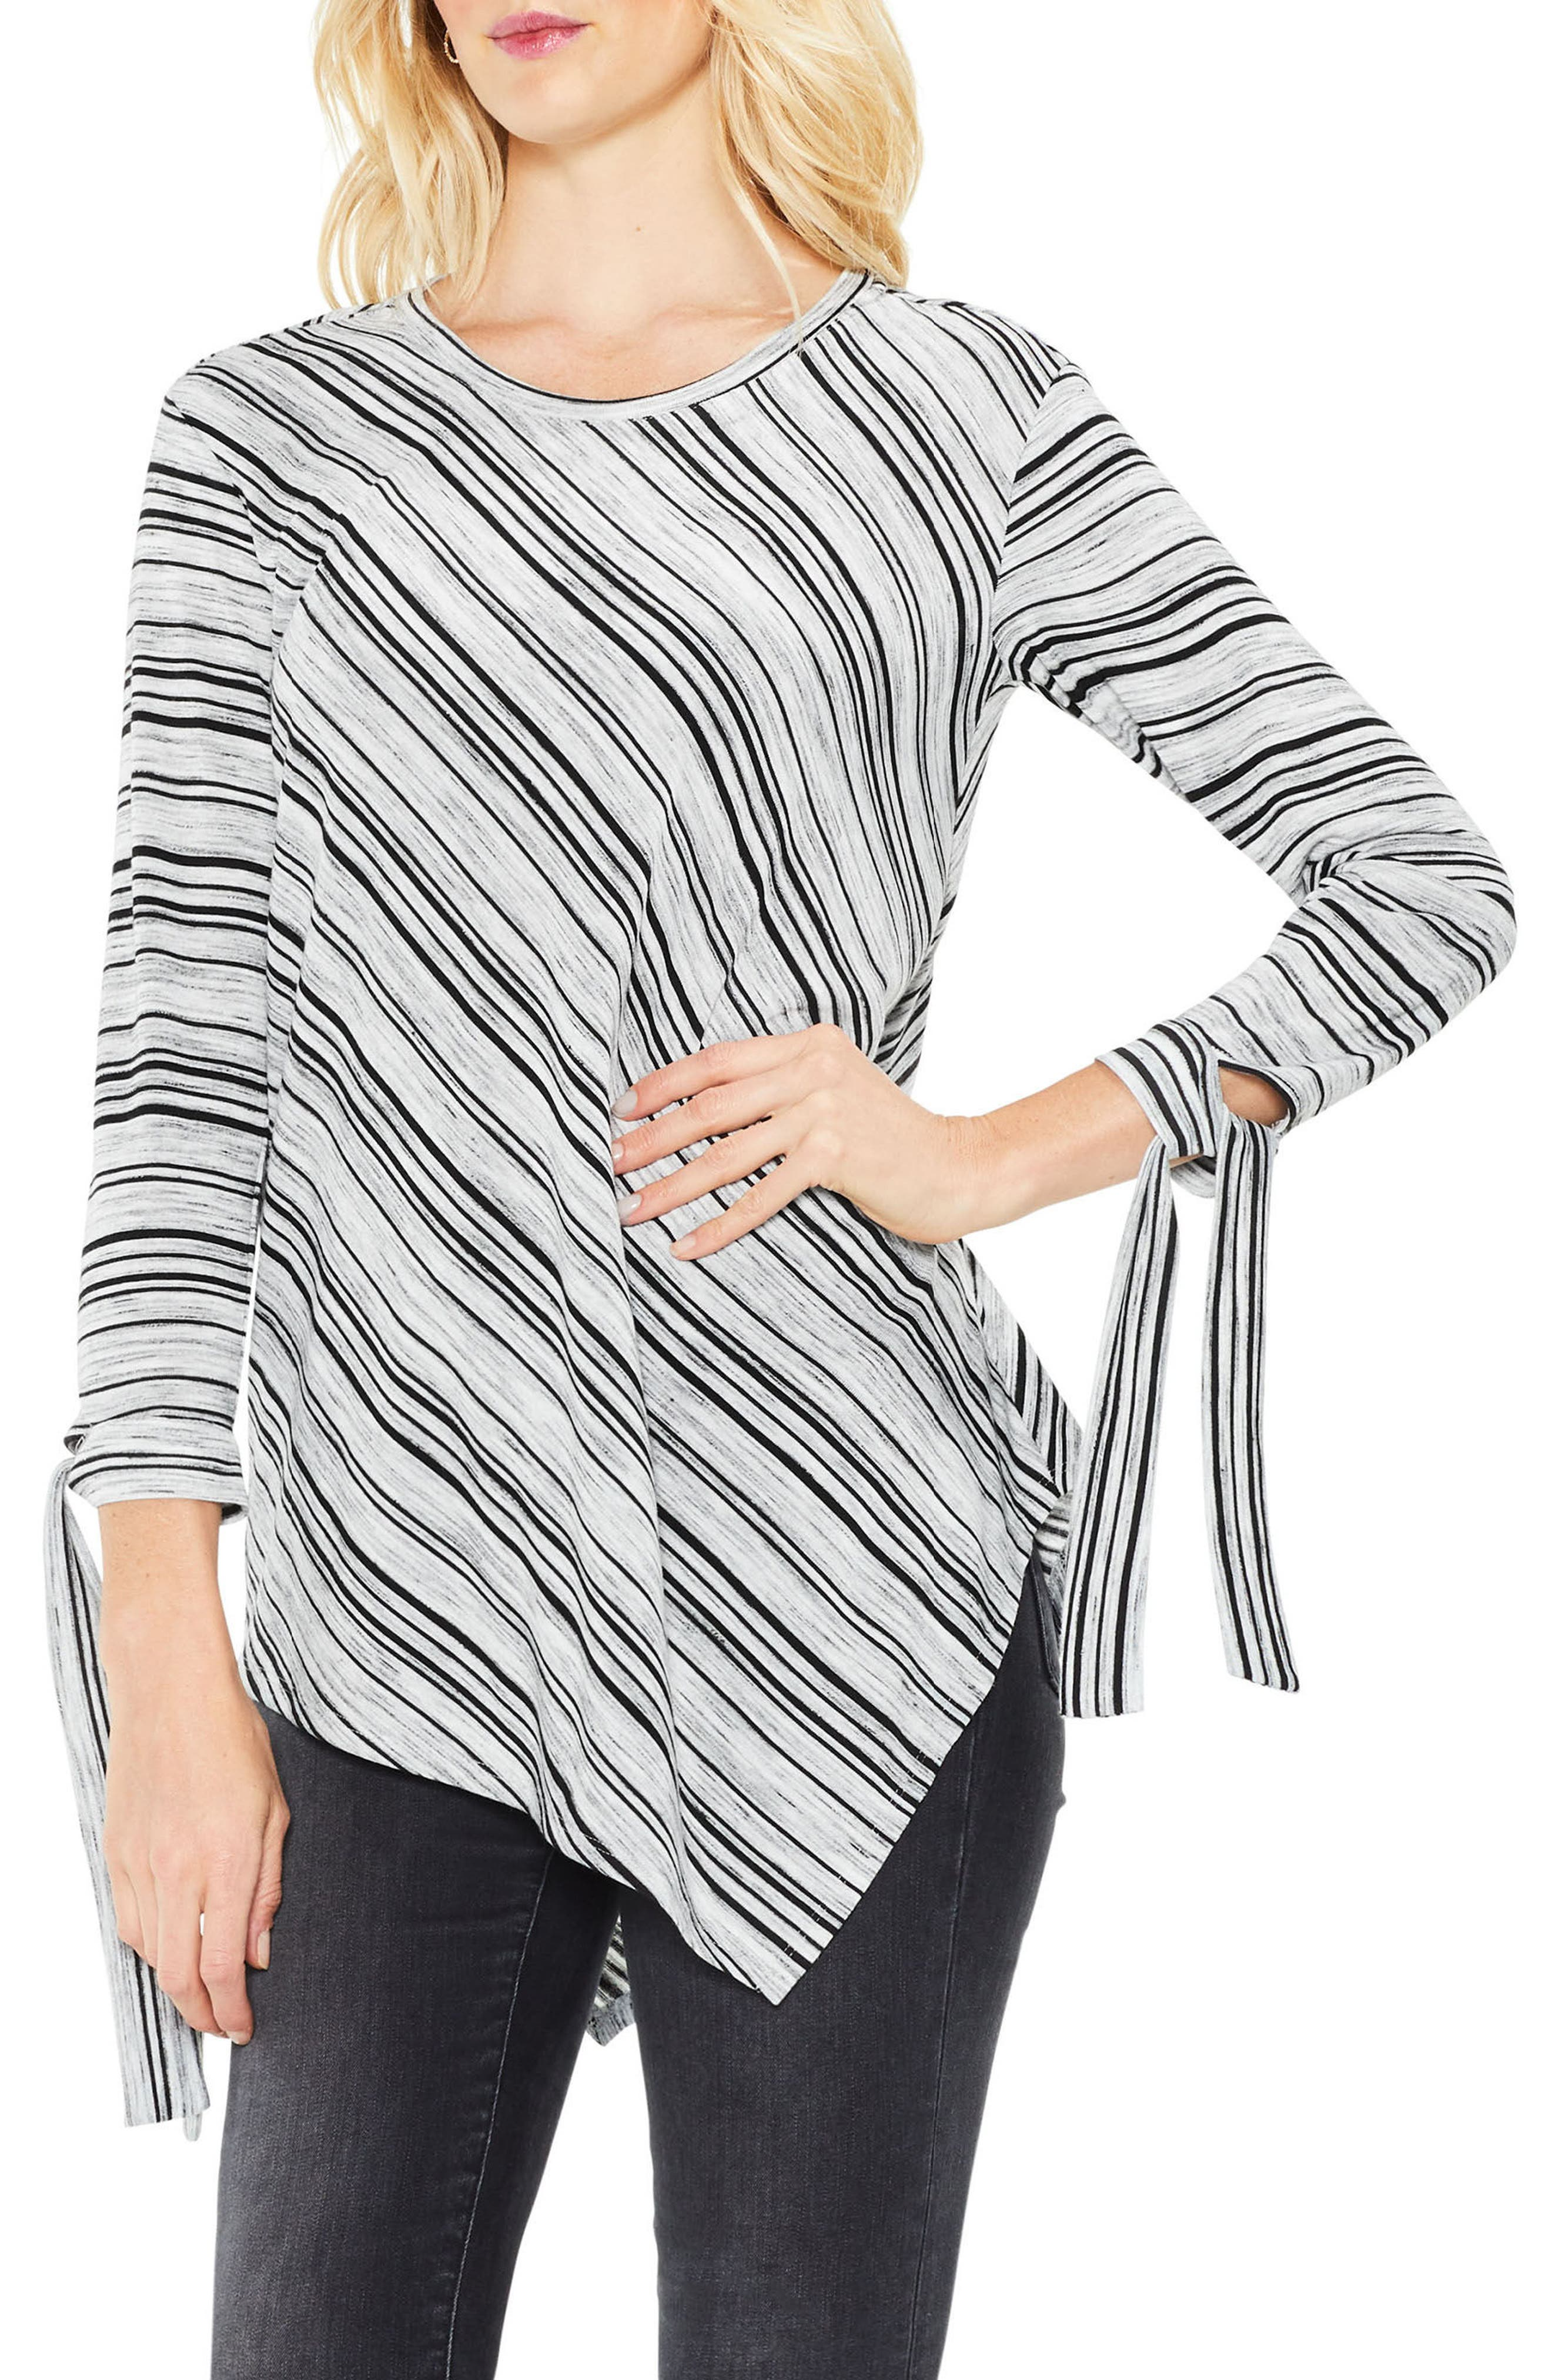 Main Image - Two by Vince Camuto Tie-Cuff Asymmetric Hem Top